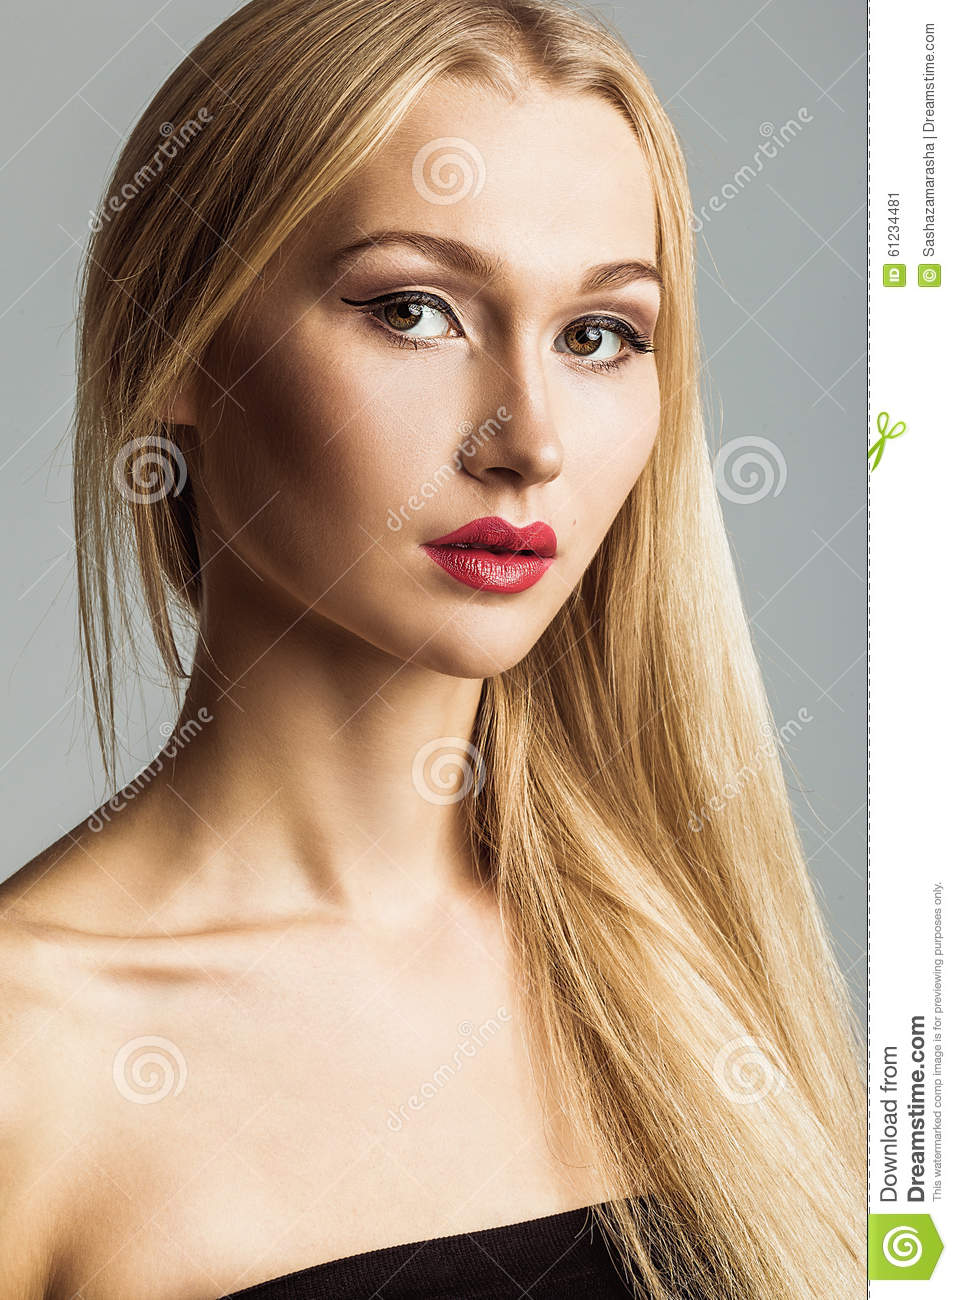 Girl with blonde hair and blue eyes clipart collection